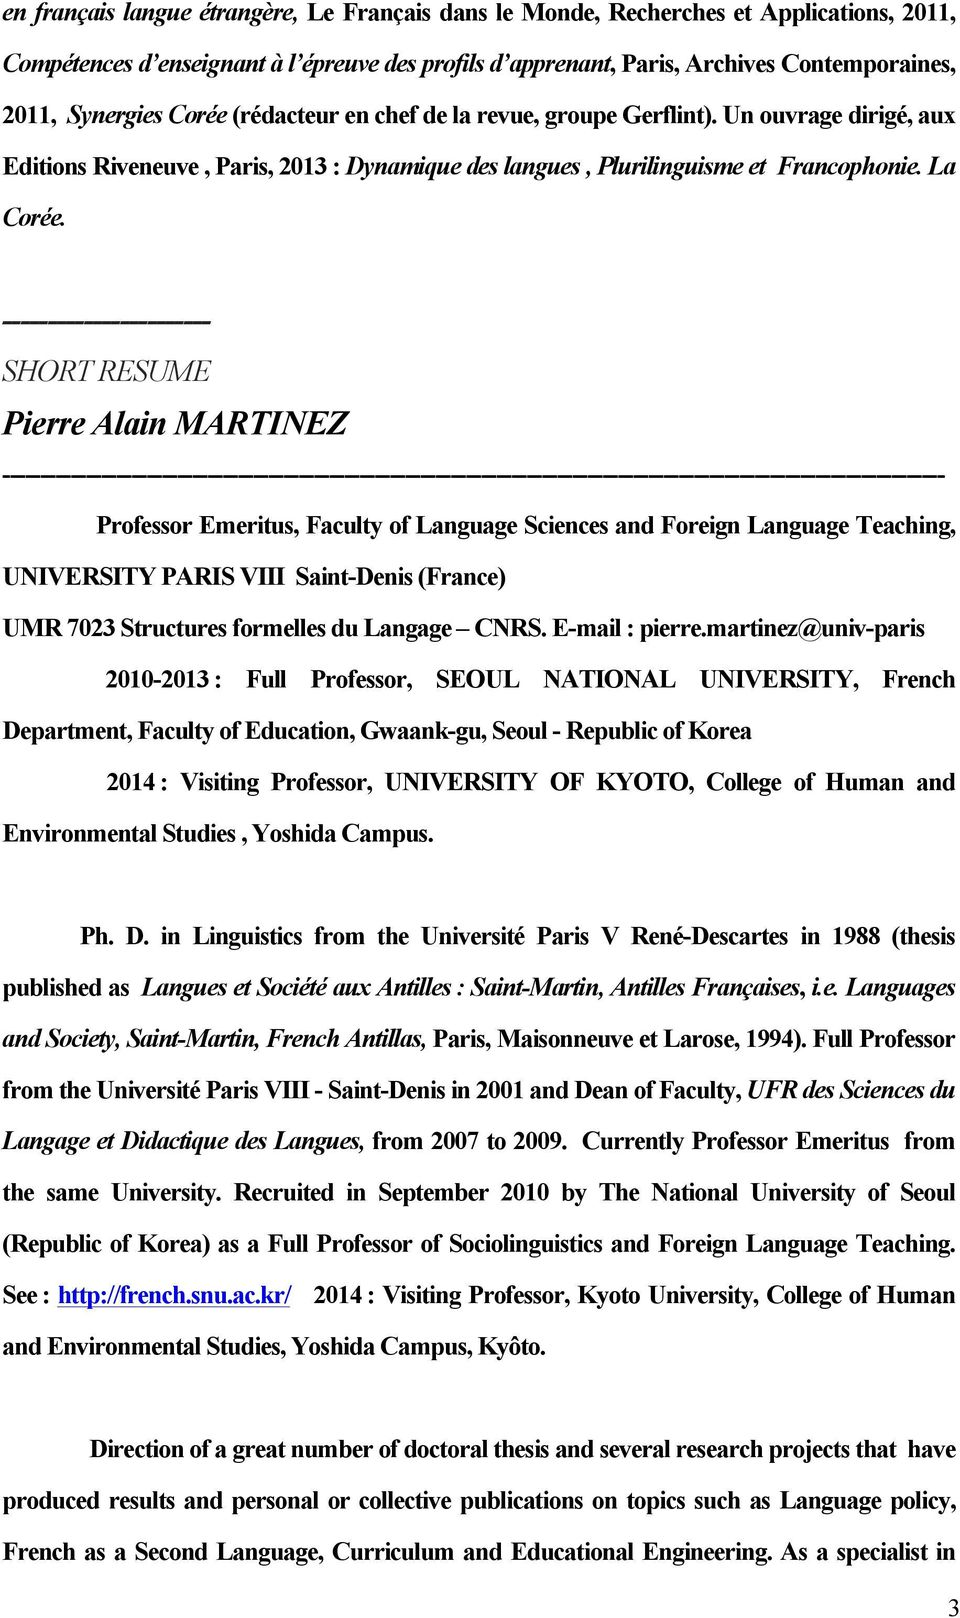 ----------------------- SHORT RESUME Pierre Alain MARTINEZ ---------------------------------------------------------------------------------------------------------------------------- Professor